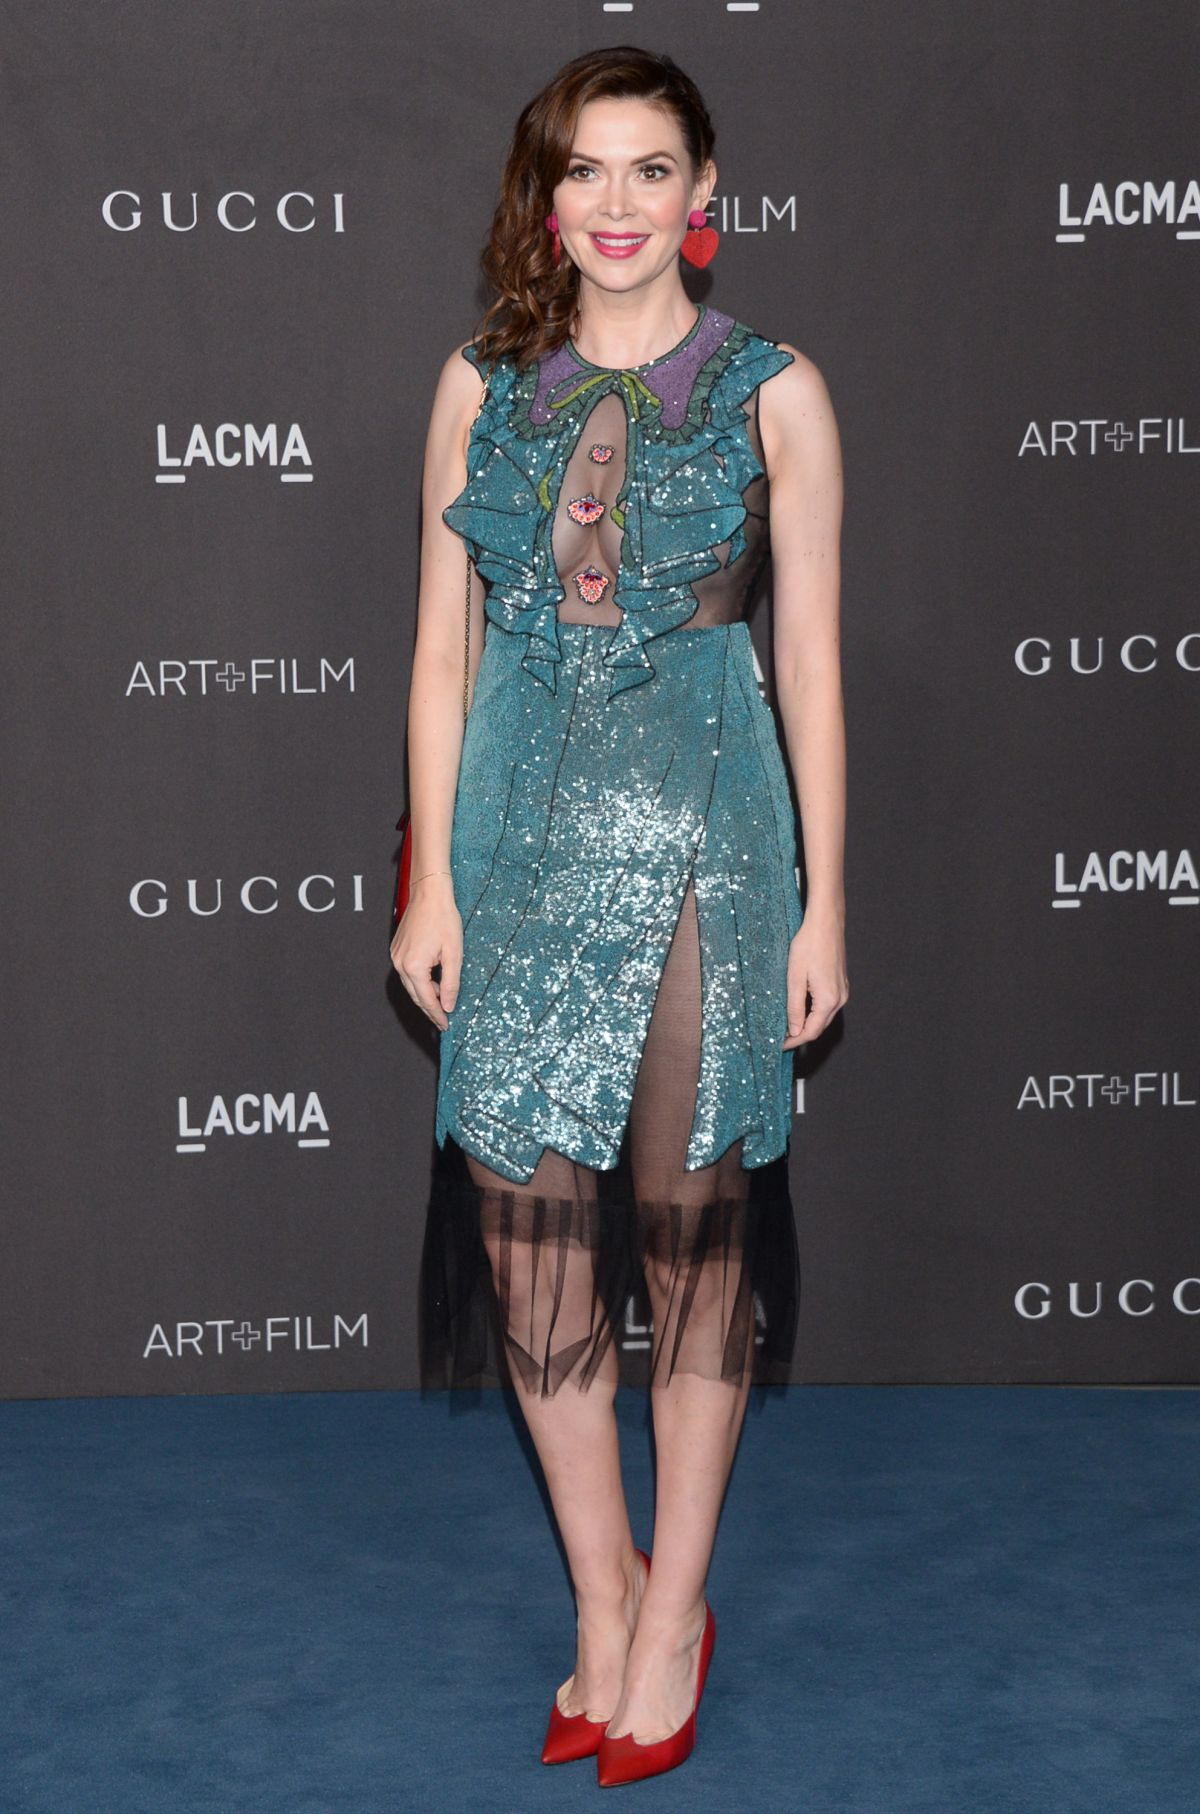 carly-steel-in-gucci-lacma-art-and-film-gala-in-los-angeles